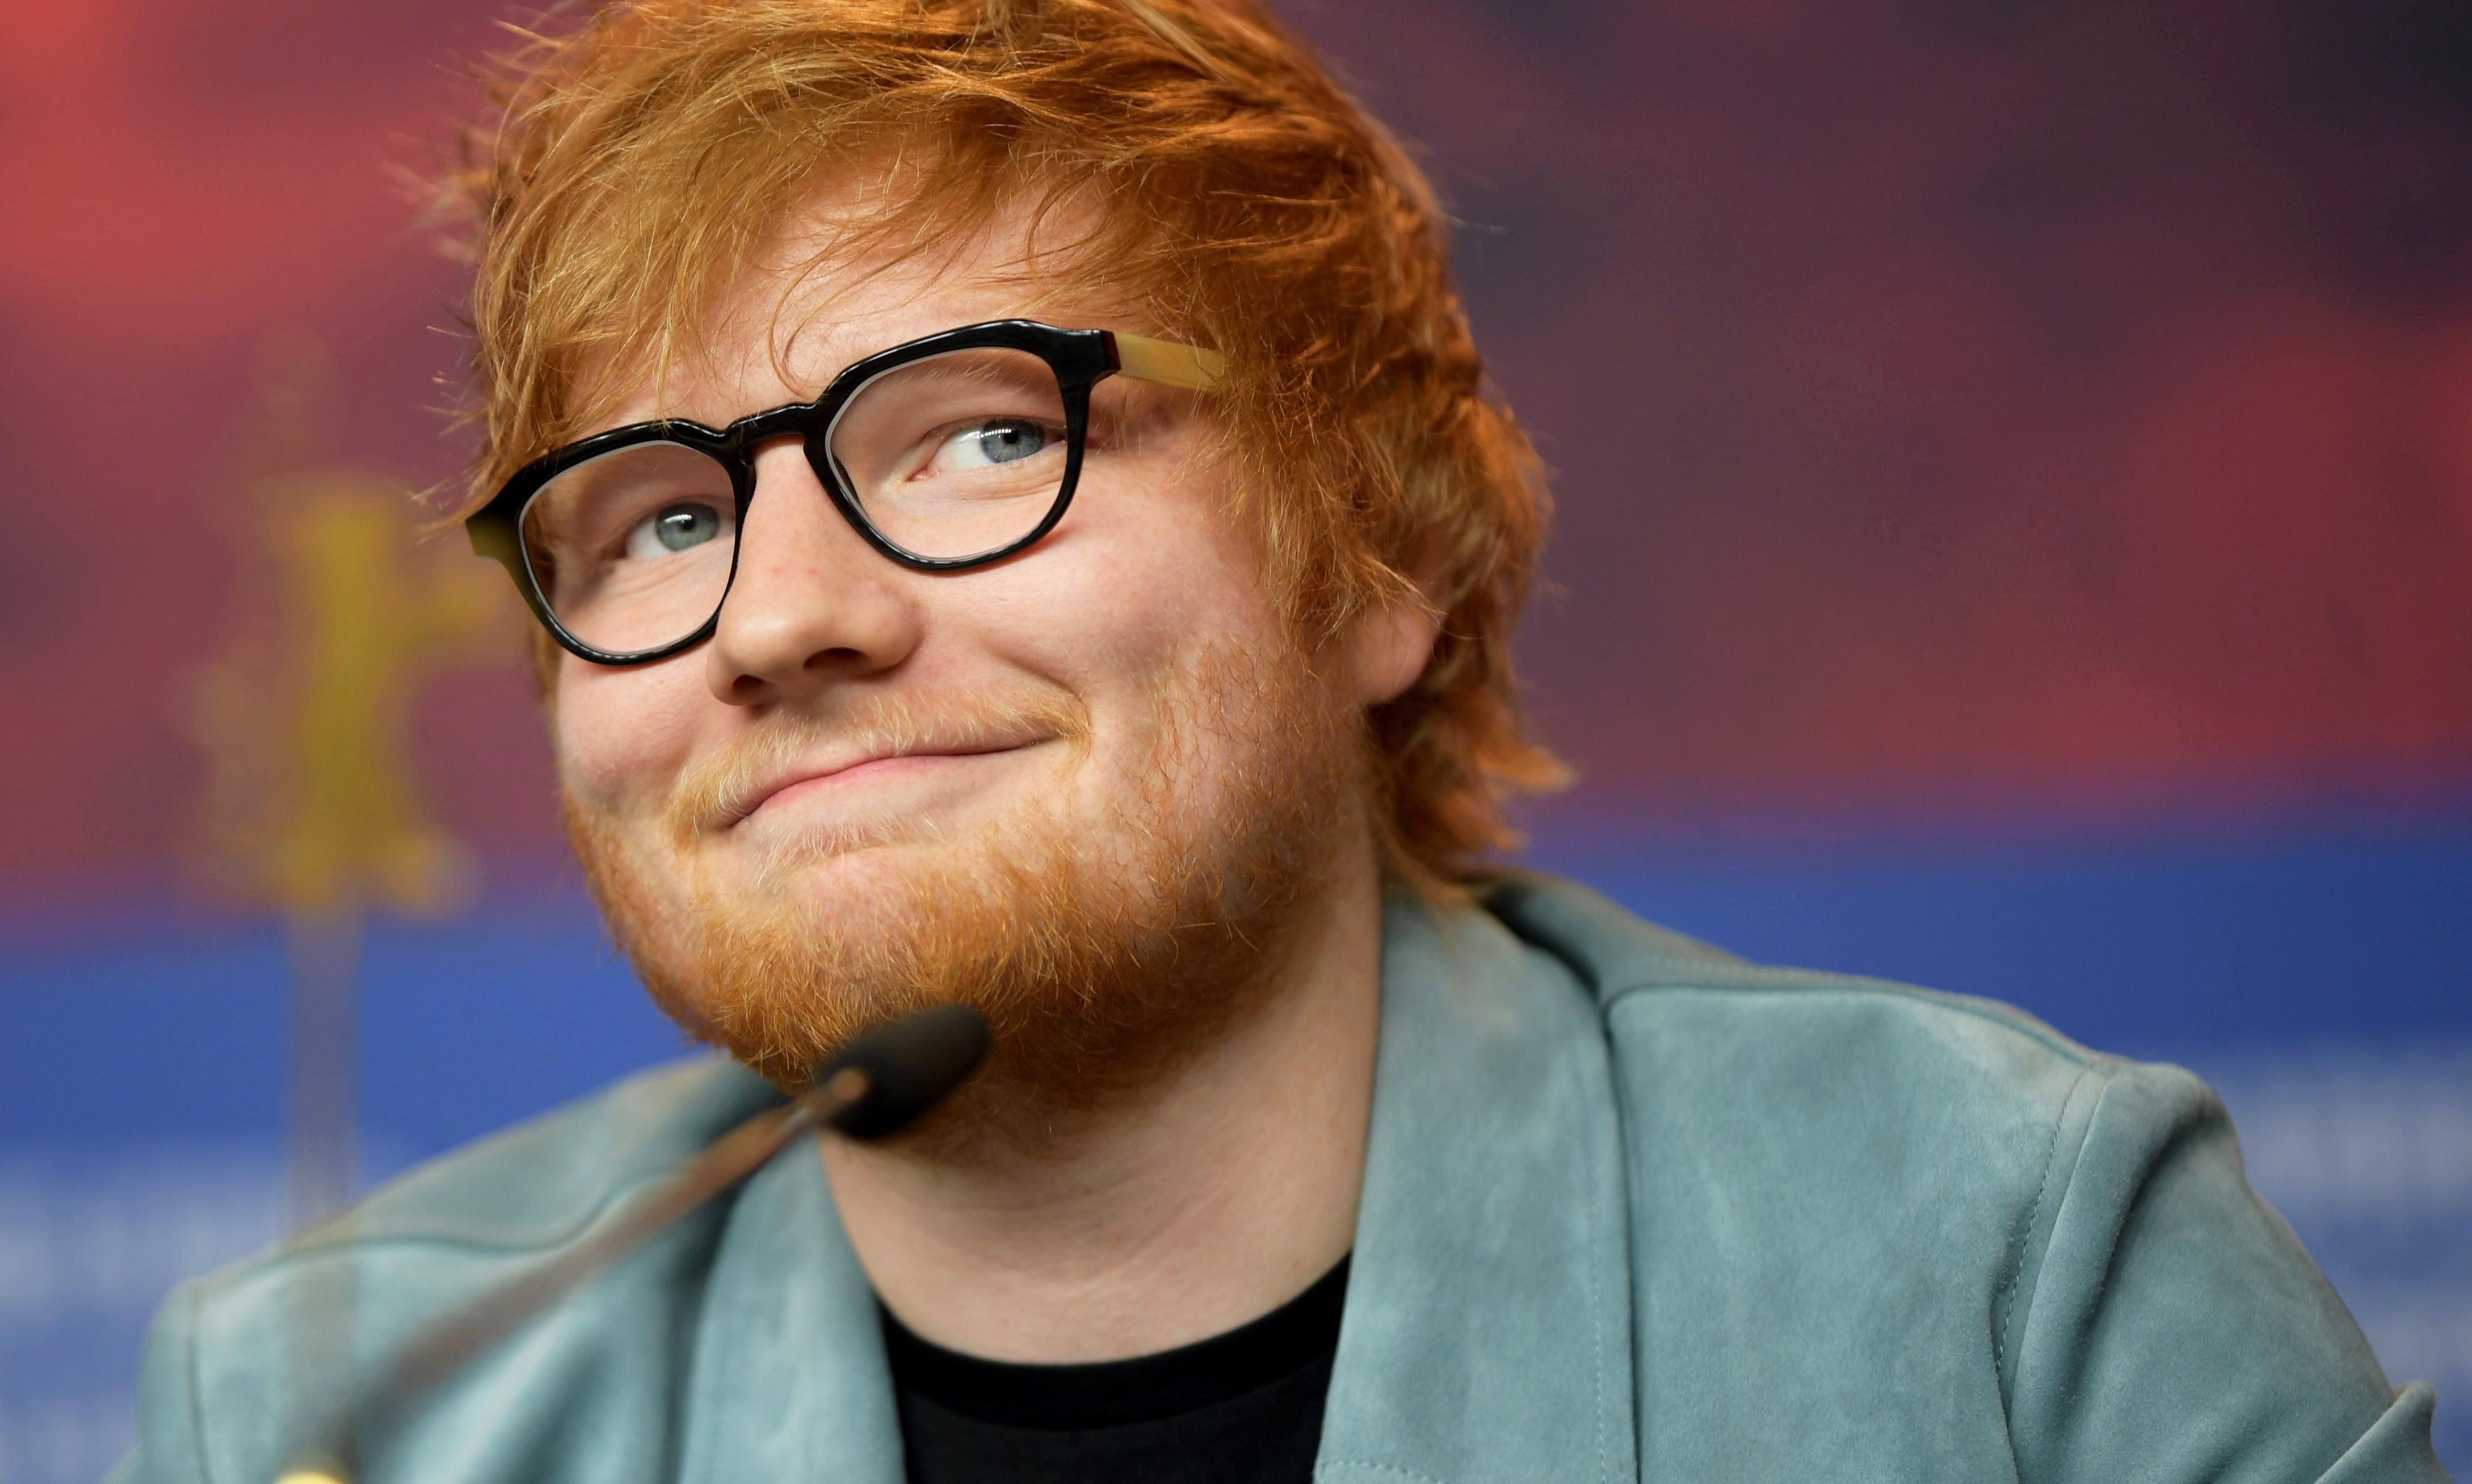 Grounded: how Ed Sheeran brought pop back down to earth